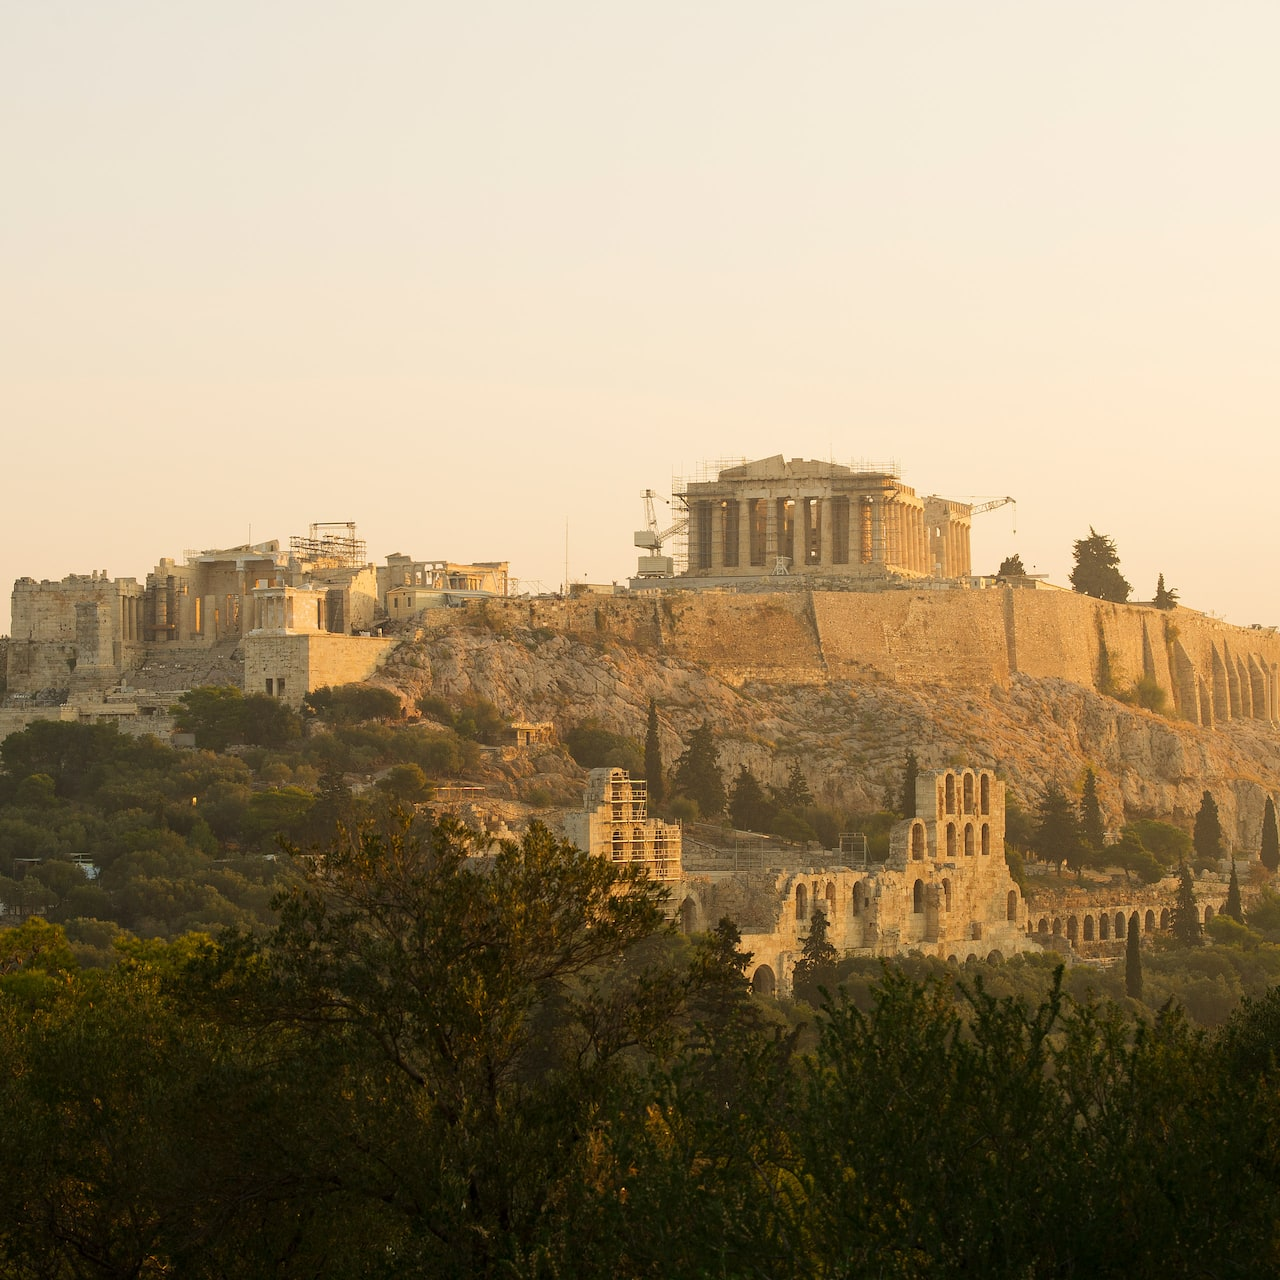 The Parthenon sits atop the Acropolis overlooking the city of Athens, Greece